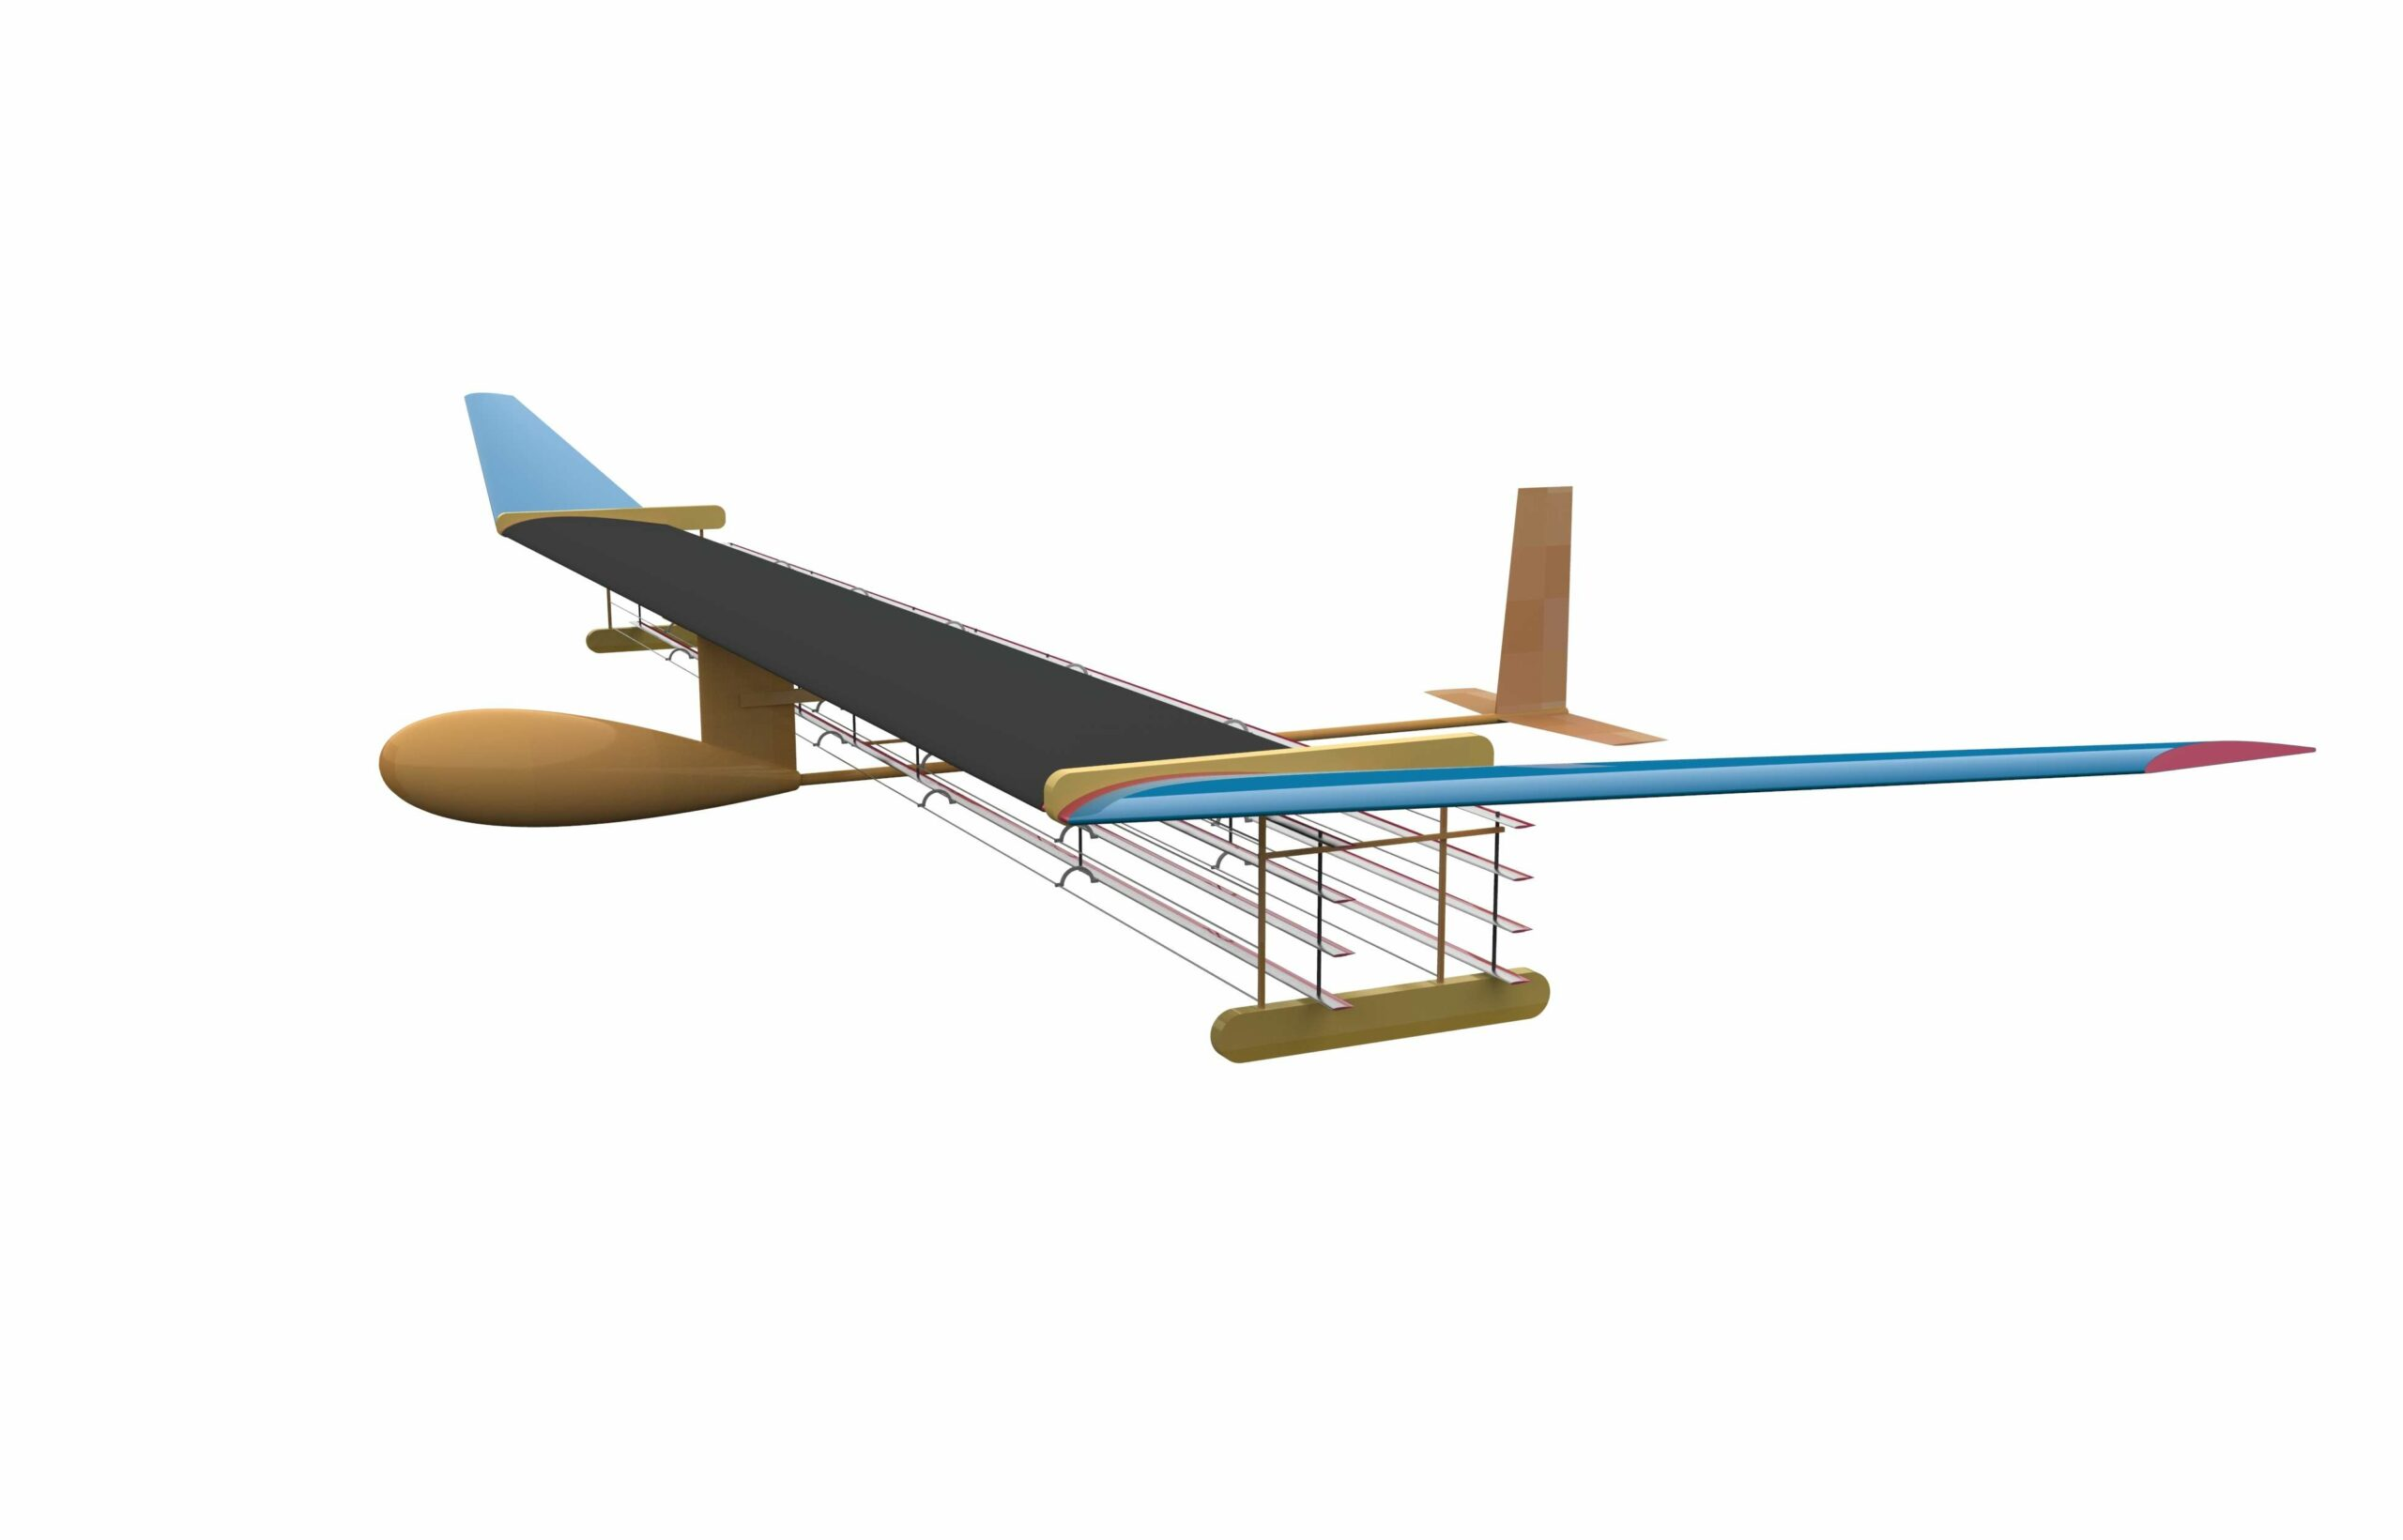 This new 'ion drive' airplane flew straight out of science fiction